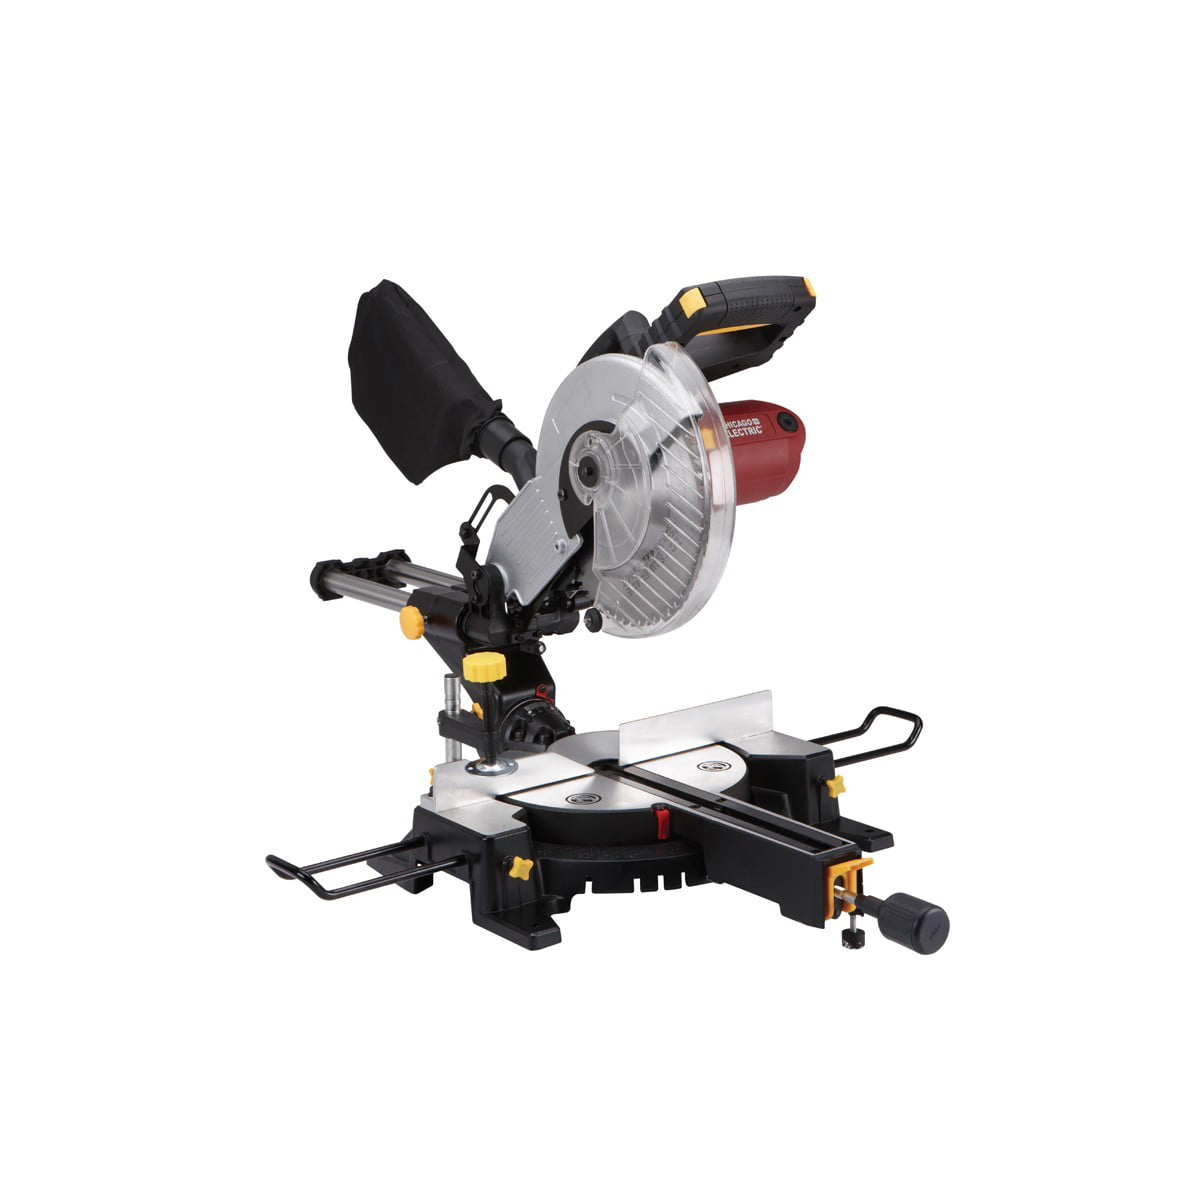 Chicago Electric Power Tools 10 in. Sliding Compound Miter Saw 61971 by